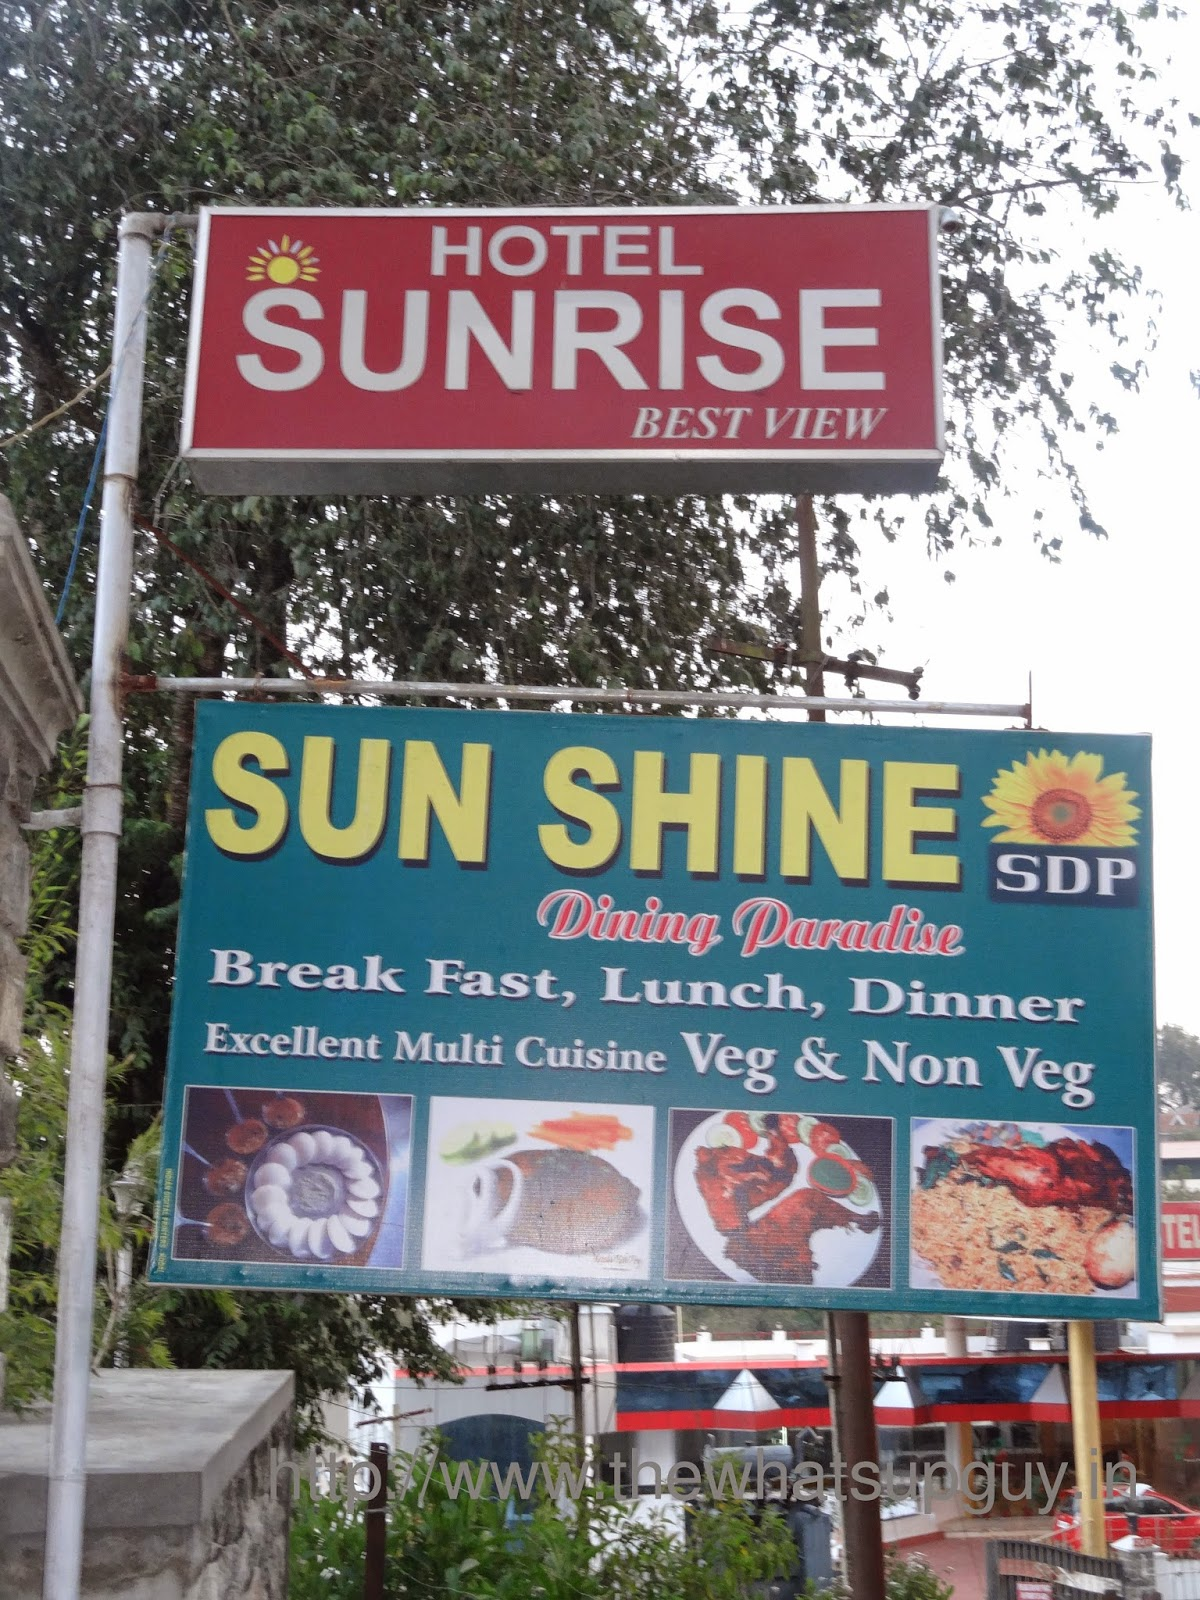 Sun Shine Restaurant In Hotel Sunrise